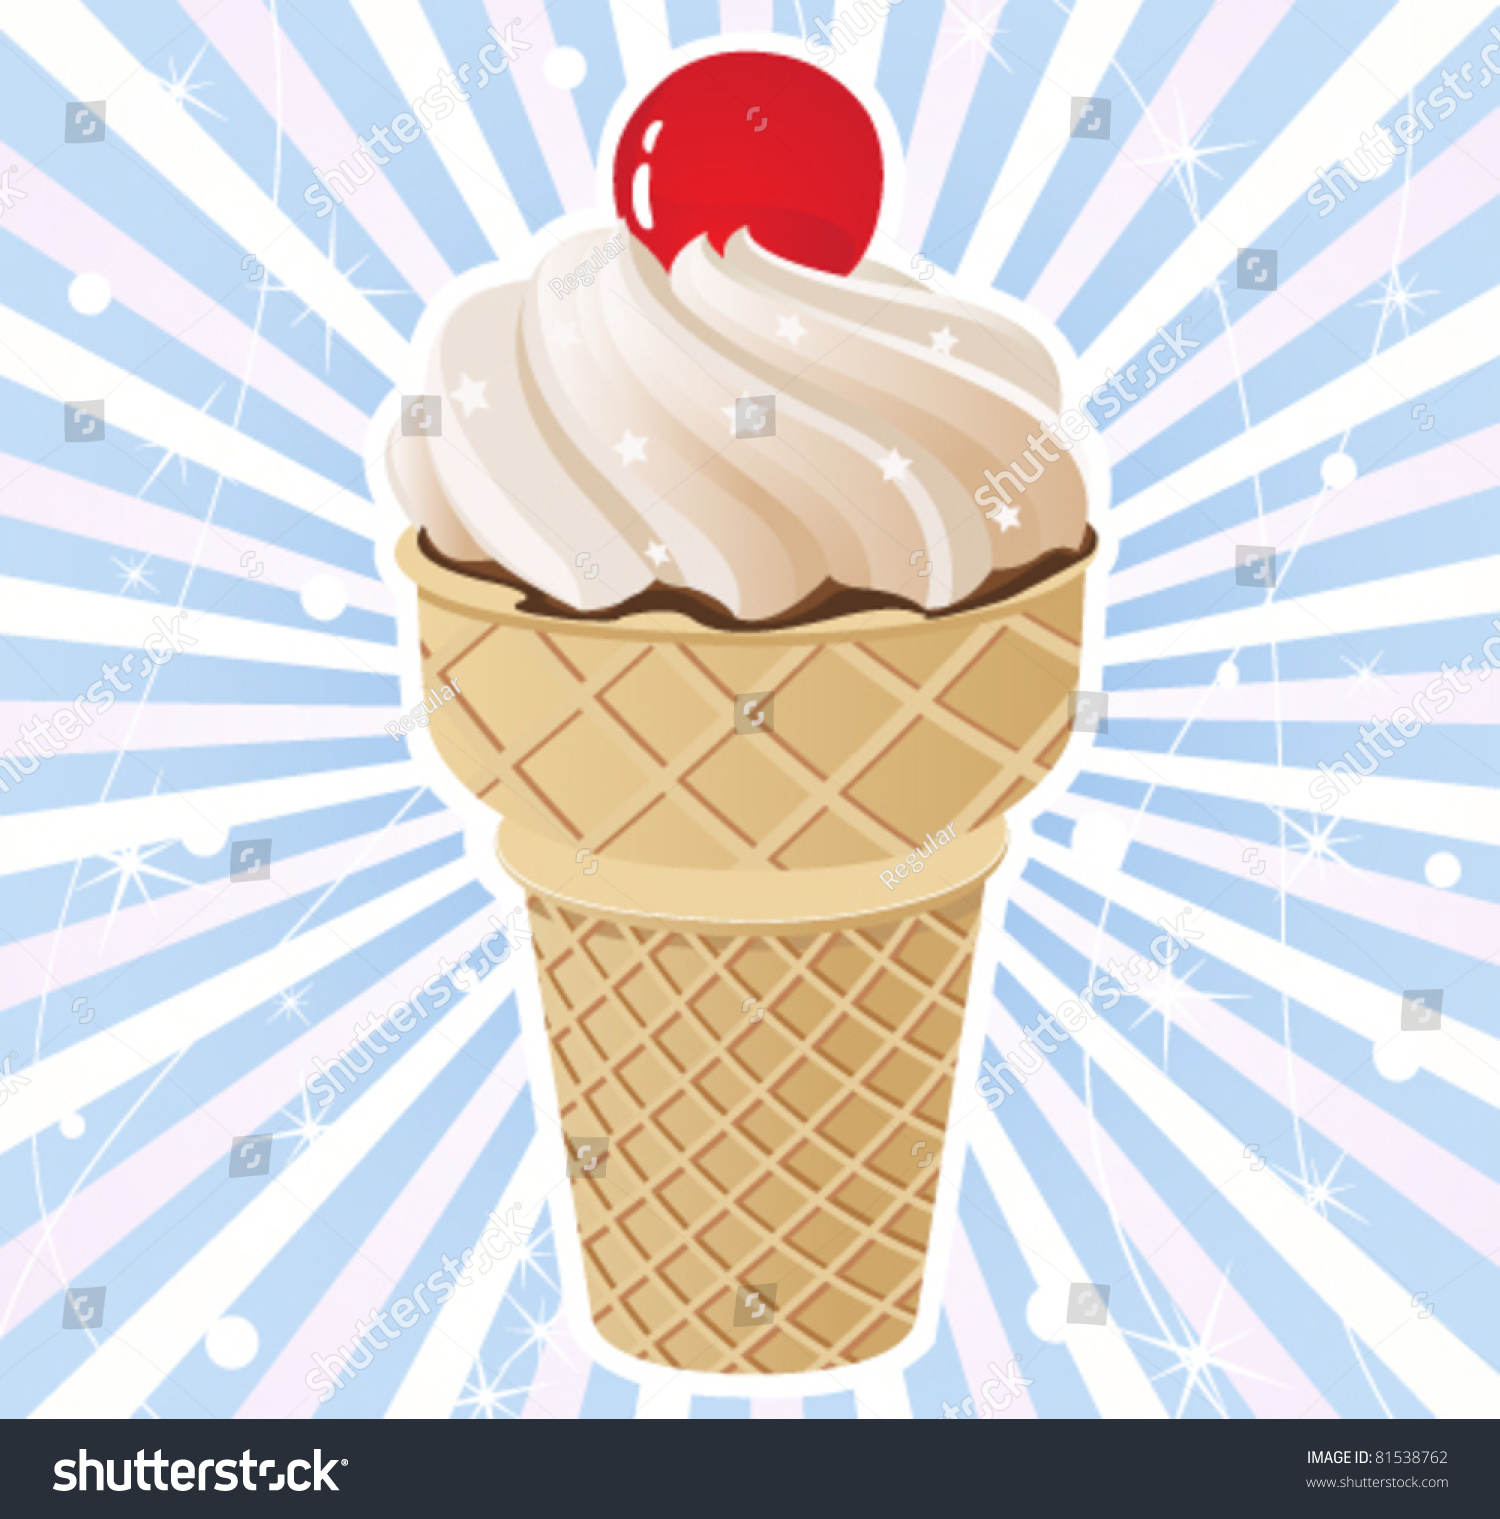 Ice Cream Cones Background Royalty Free Vector Image: Ice Cream Cone On Radiant Background Stock Vector 81538762